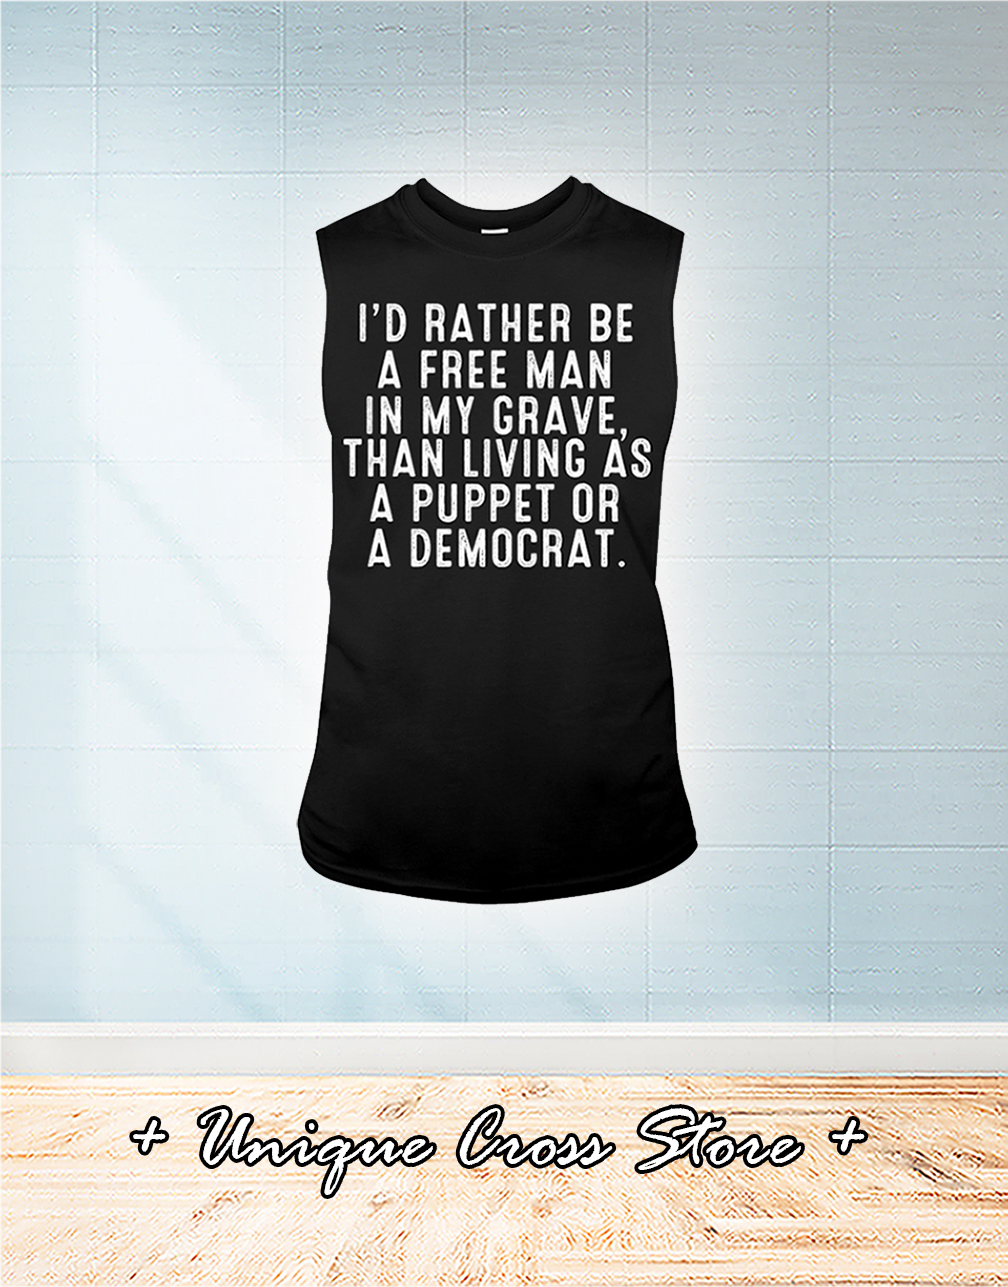 I'd Rather Be A Free Man In My Grave Than Living As A Puppet Or A Democrat tank top